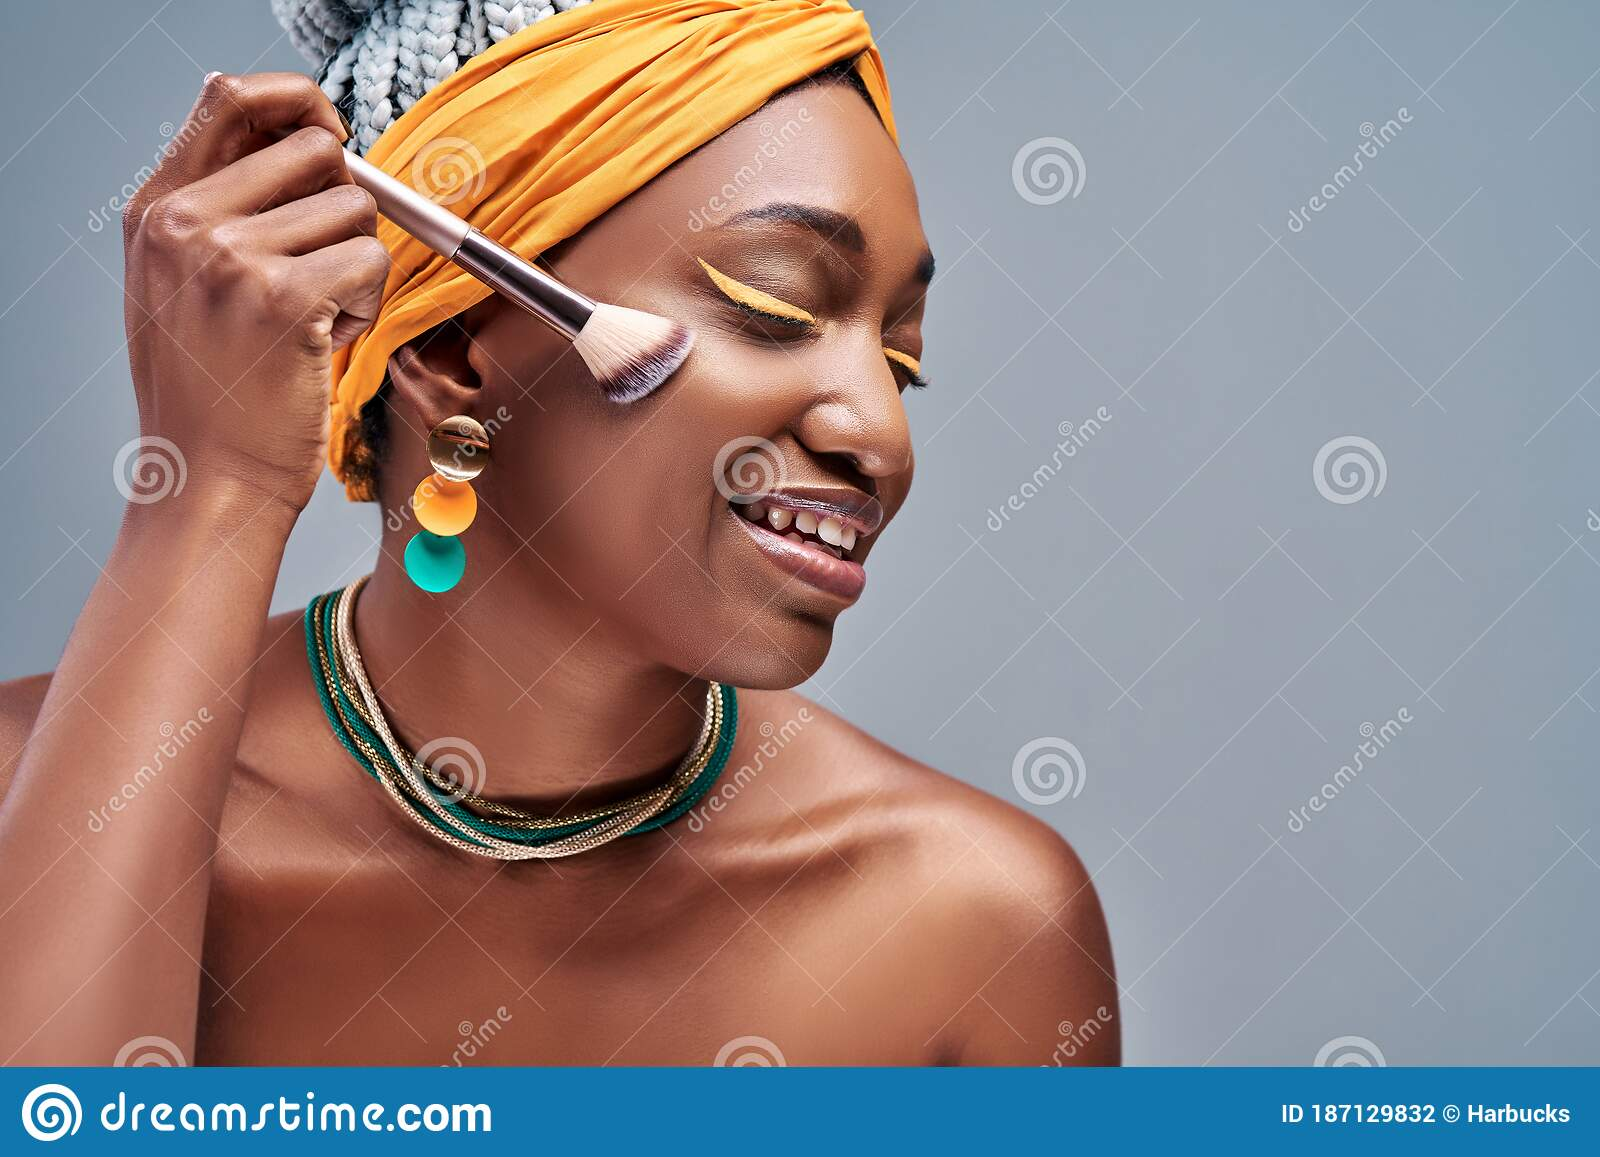 Close Up Side View Portrait Of Beautiful Aro American Woman Applying Makeup With Brush Stock Photo Image Of Blusher Cheerful 187129832